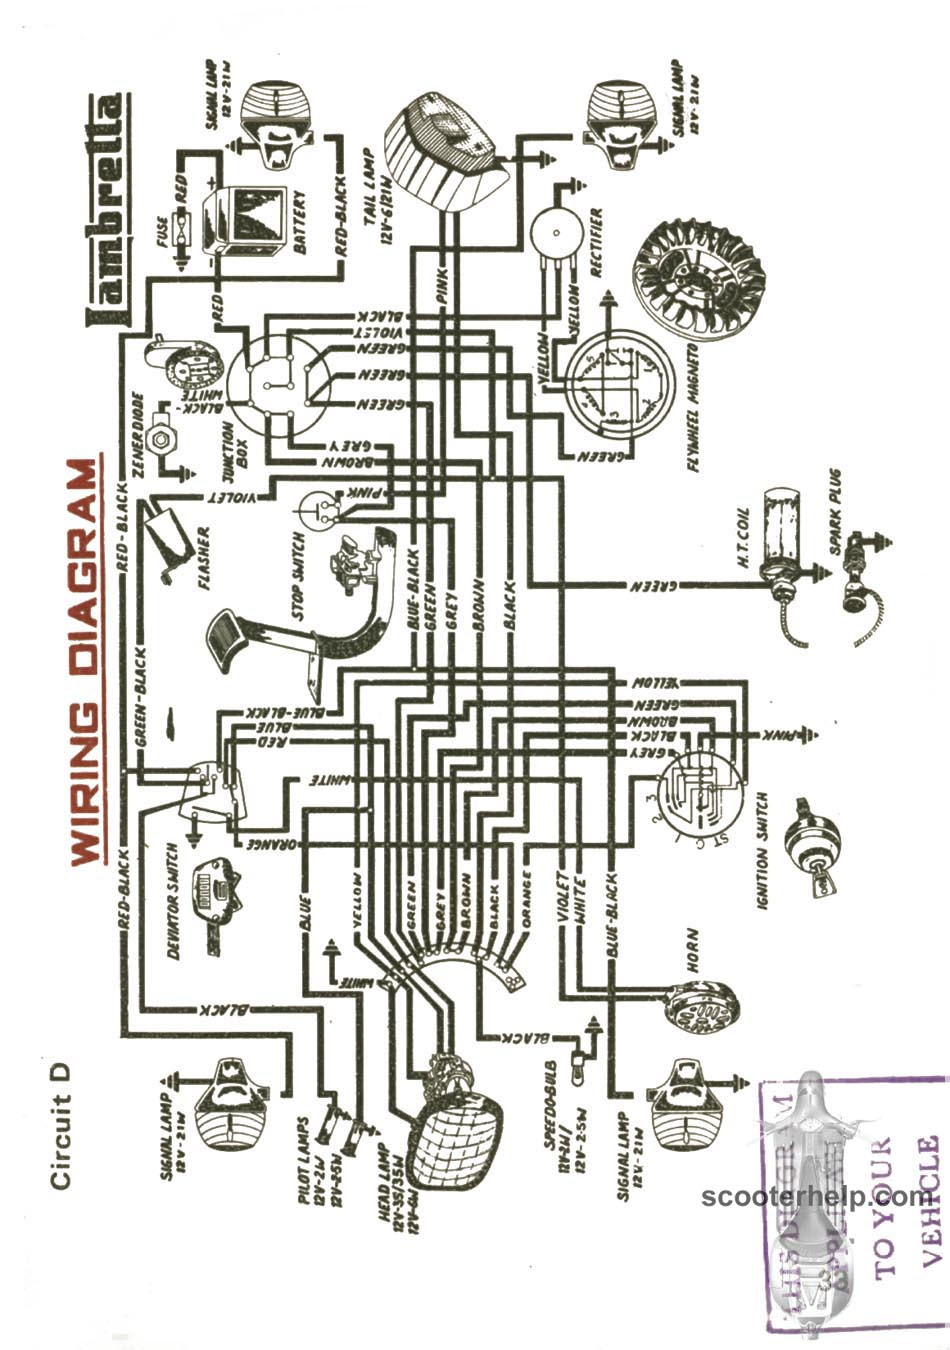 medium resolution of lambretta wiring diagram schema diagram database lambretta gp wiring diagram lambretta wiring diagram